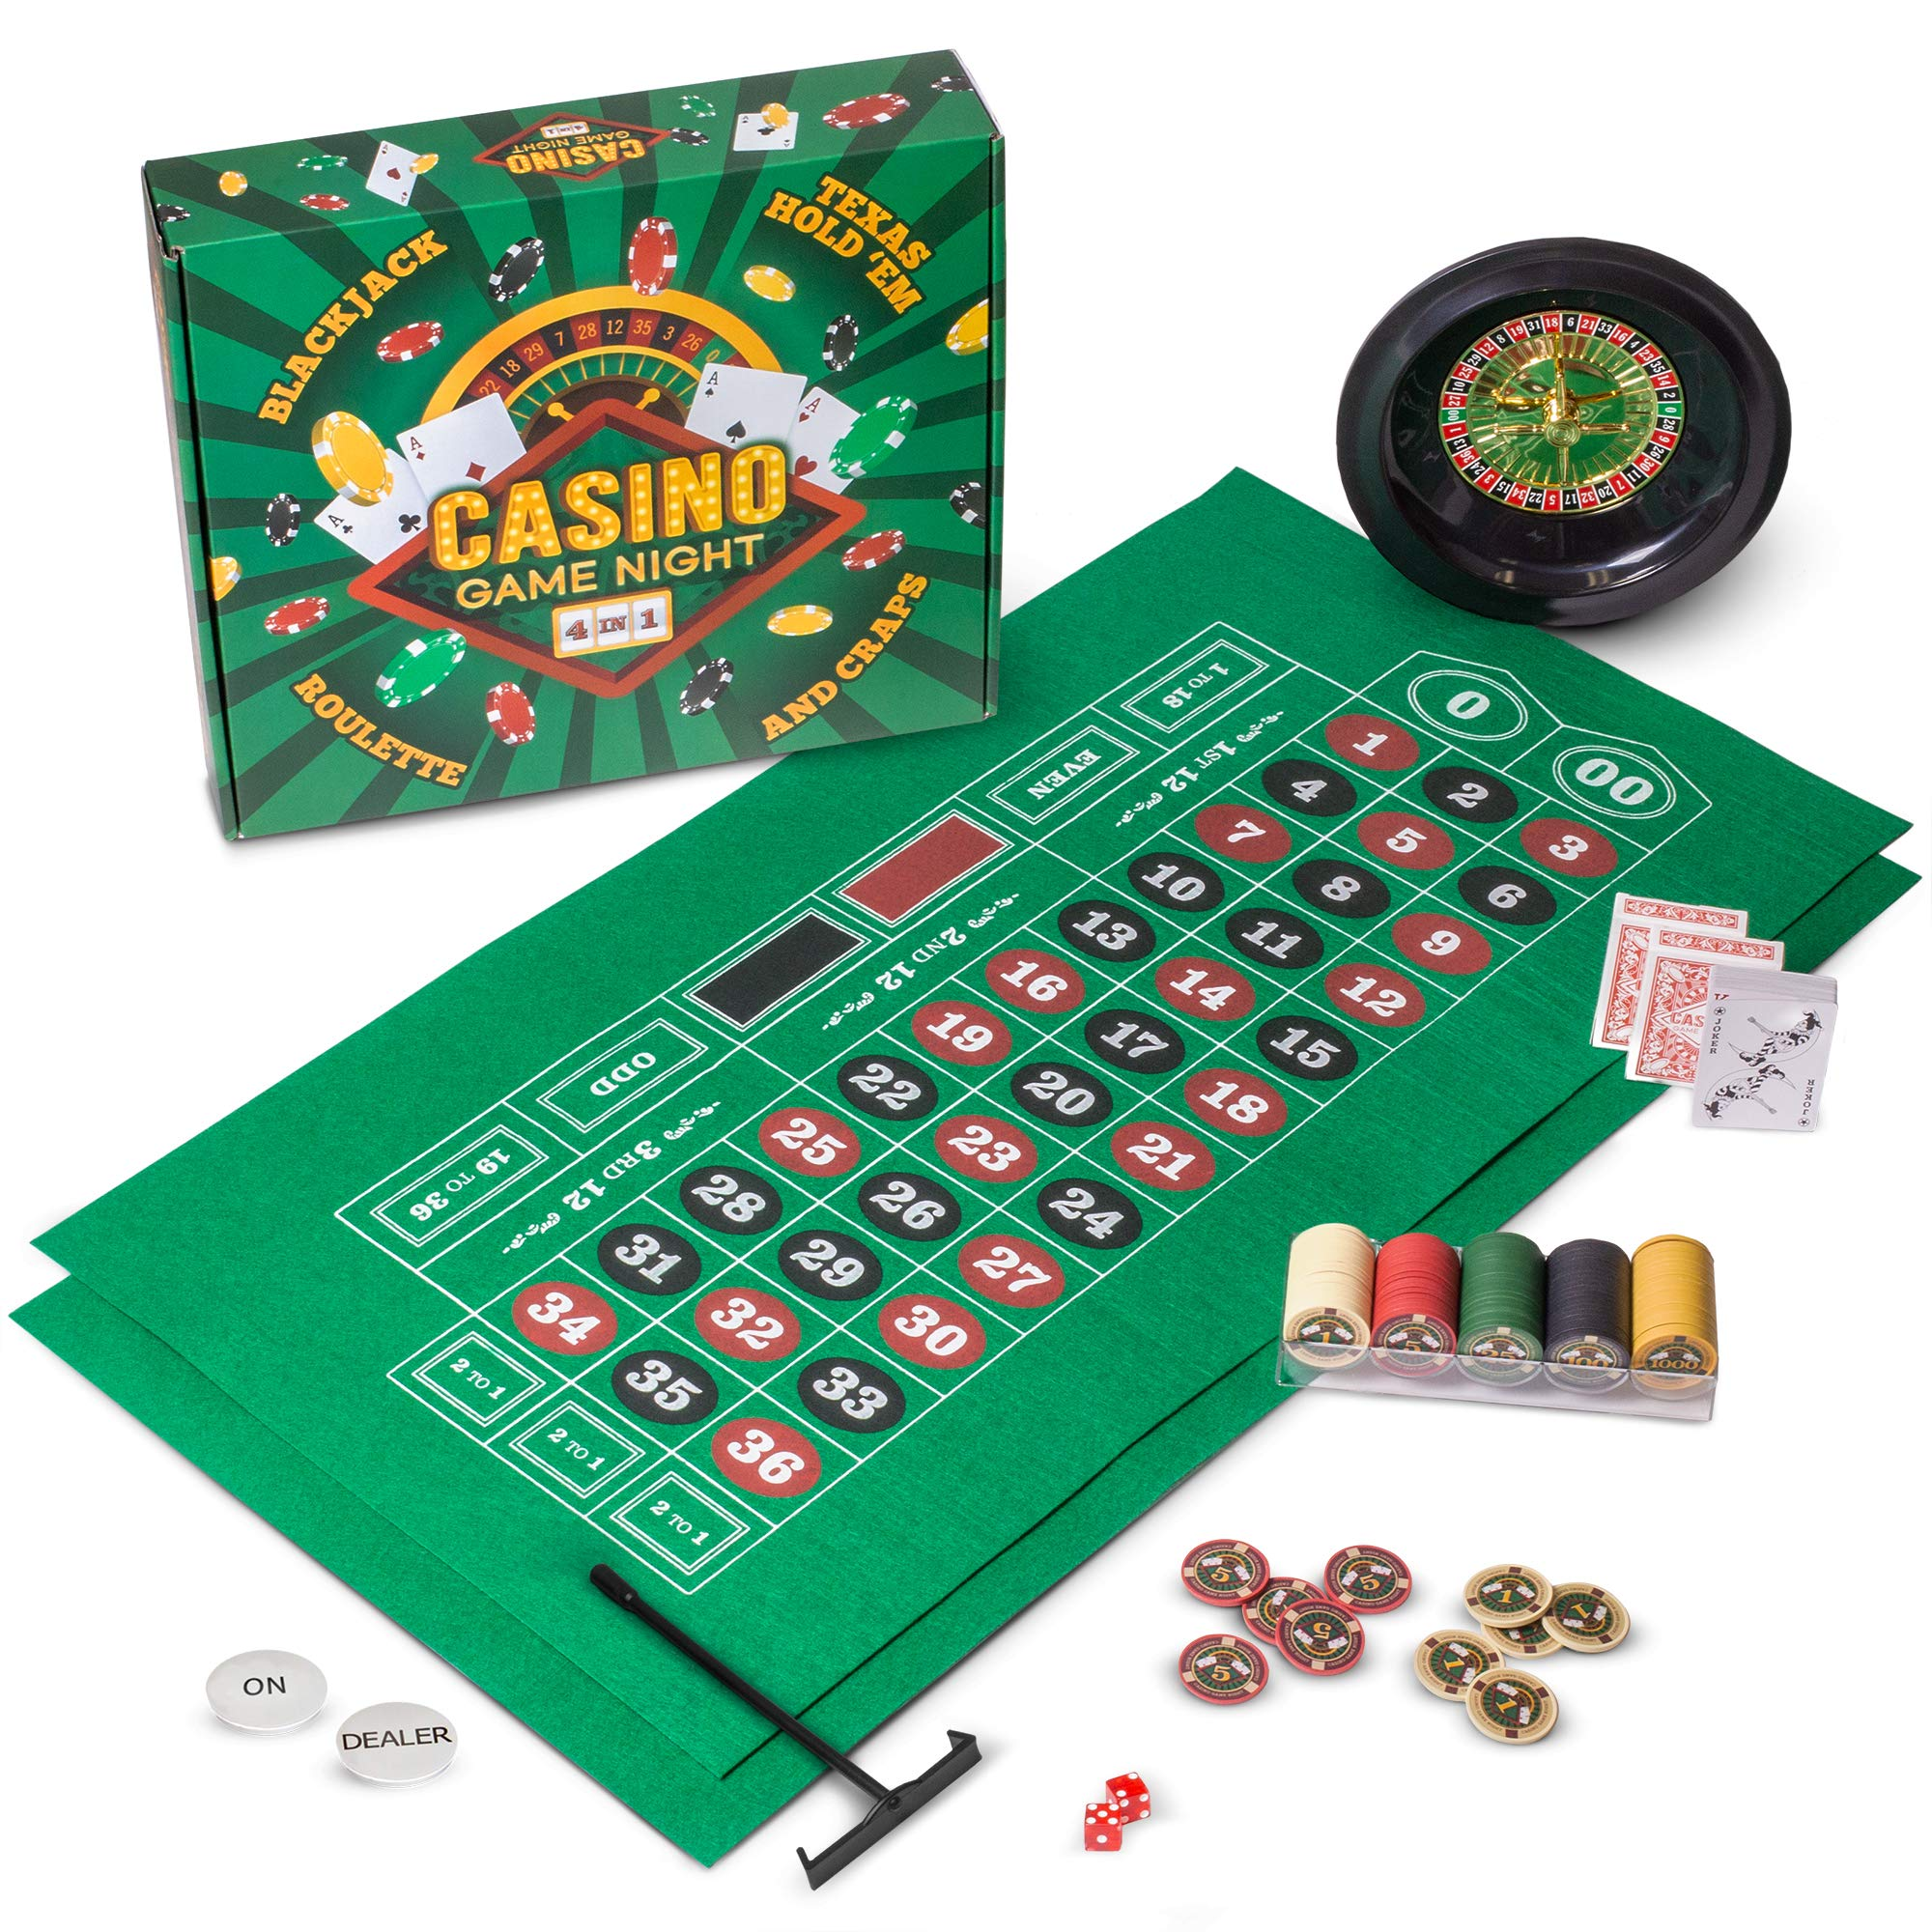 Casino Game Night | 4-in-1 Gambling Game Set | Texas Hold 'Em, Blackjack, Roulette, and Craps | Includes Roulette Wheel, 2 Double-sided Mini Felts, 100 Poker Chips, Craps Dice, Playing Cards, and More by Brybelly